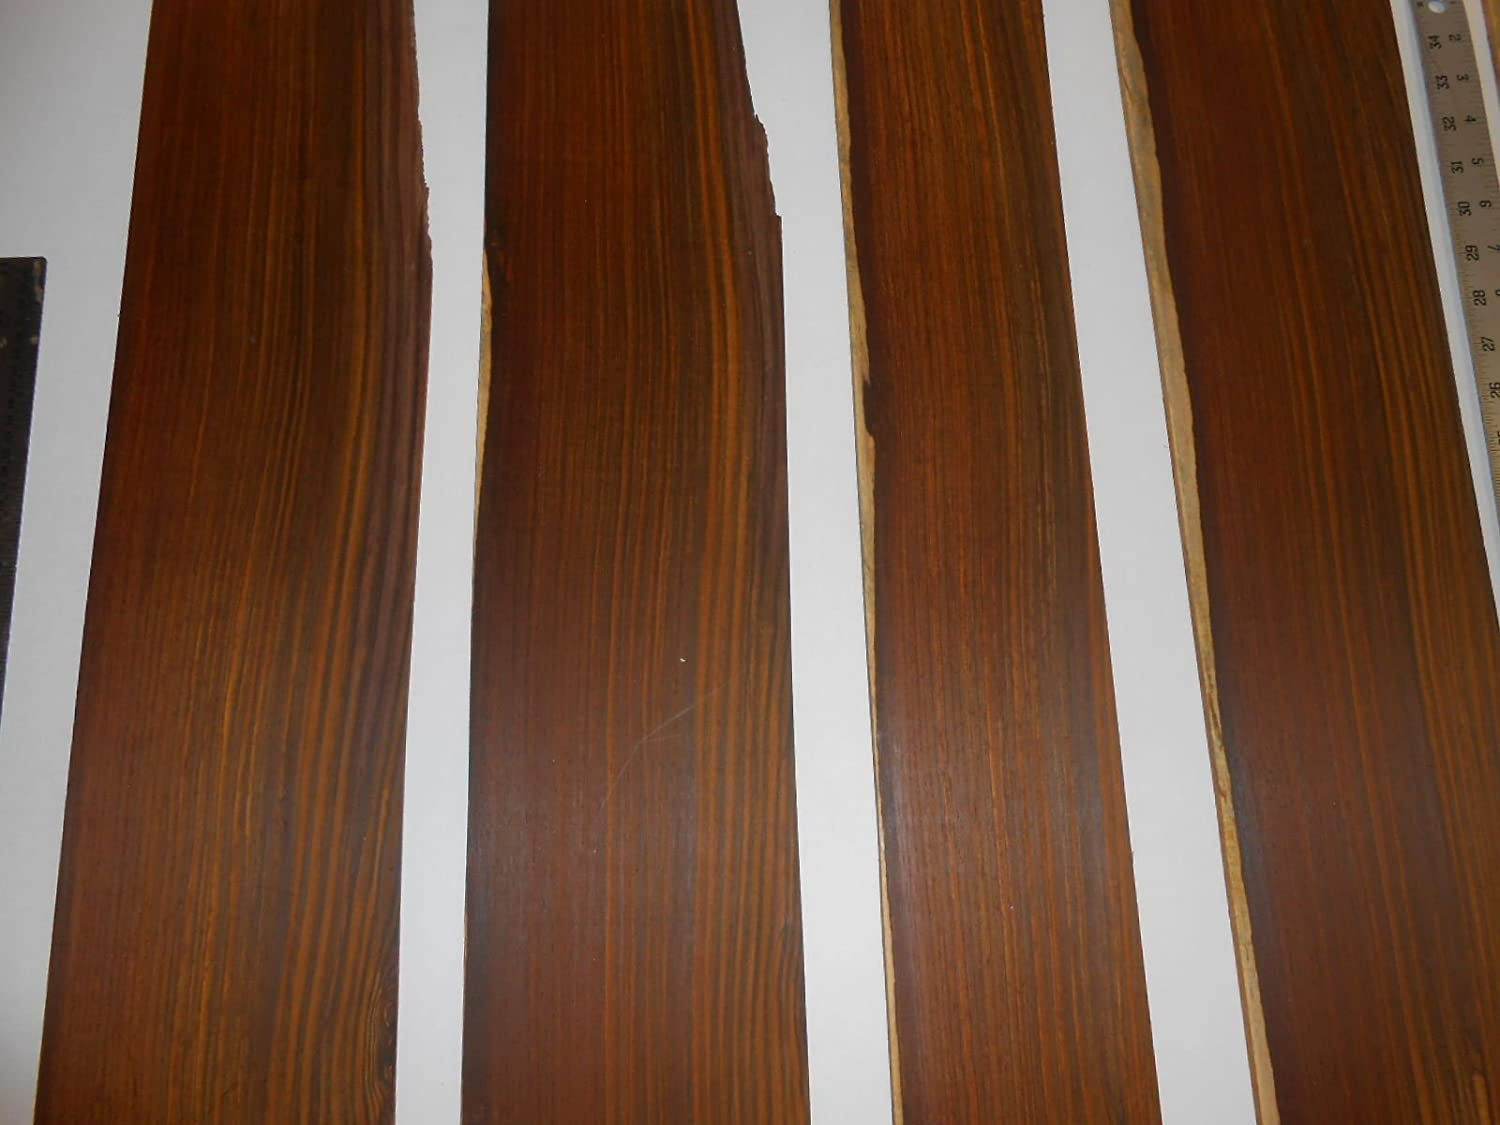 5 square feet of sanded cocobolo veneer t 0.0625 16 or Complete Free Shipping inches Discount mail order 1